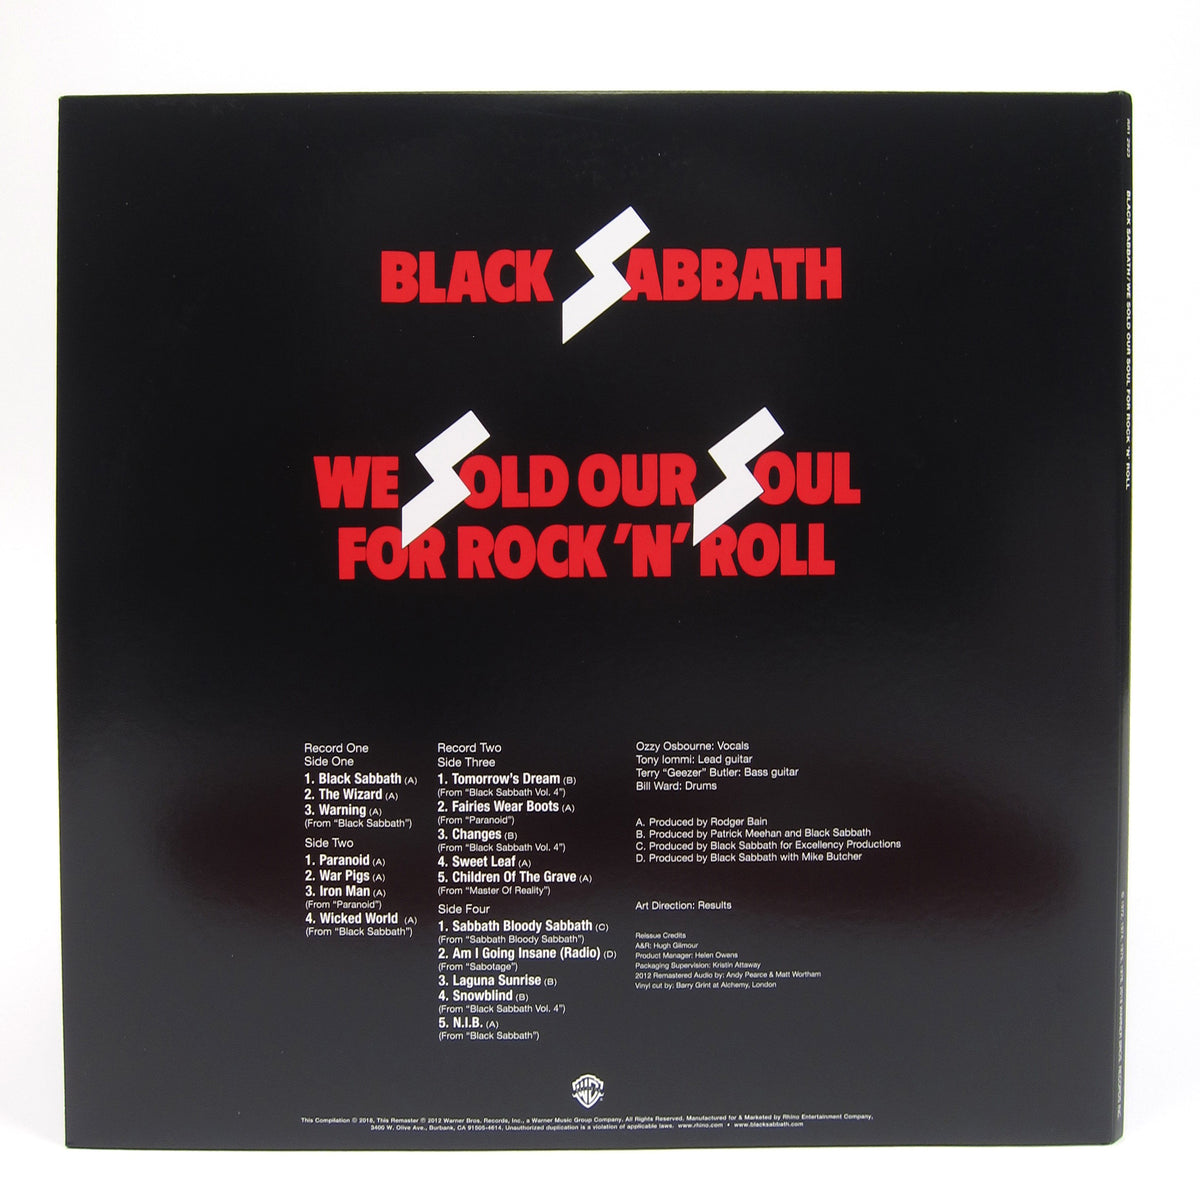 Black Sabbath: We Sold Our Soul for Rock 'n' Roll (Colored Vinyl) Vinyl 2LP